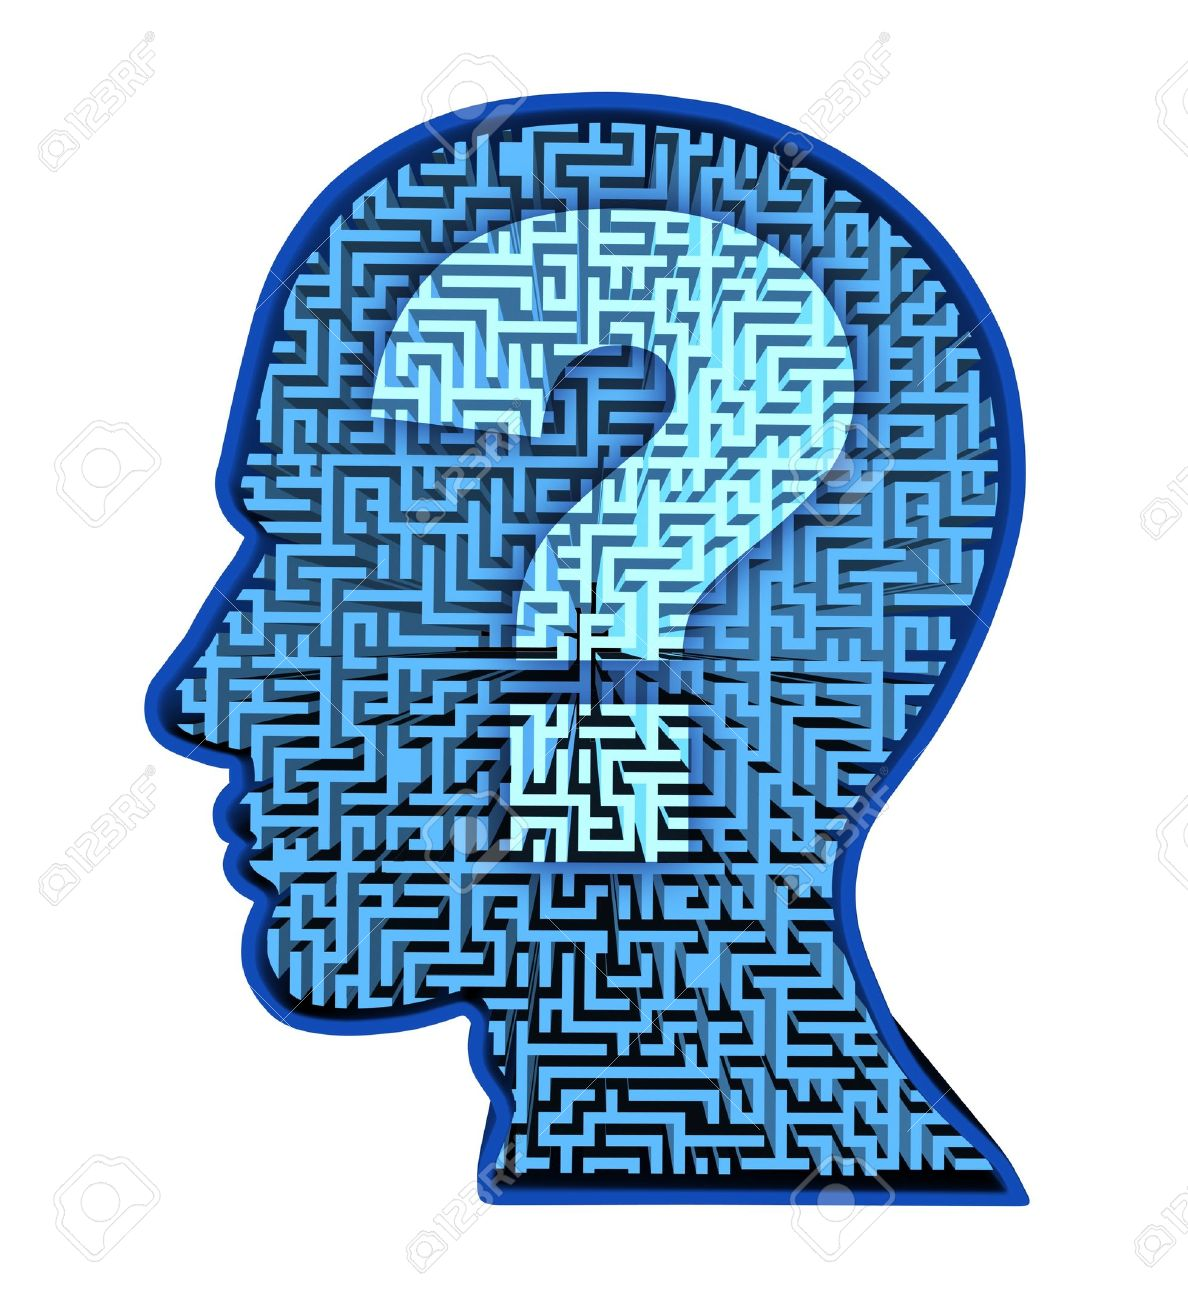 Human Brain Research And Intelligence Puzzle With A Blue Glowing